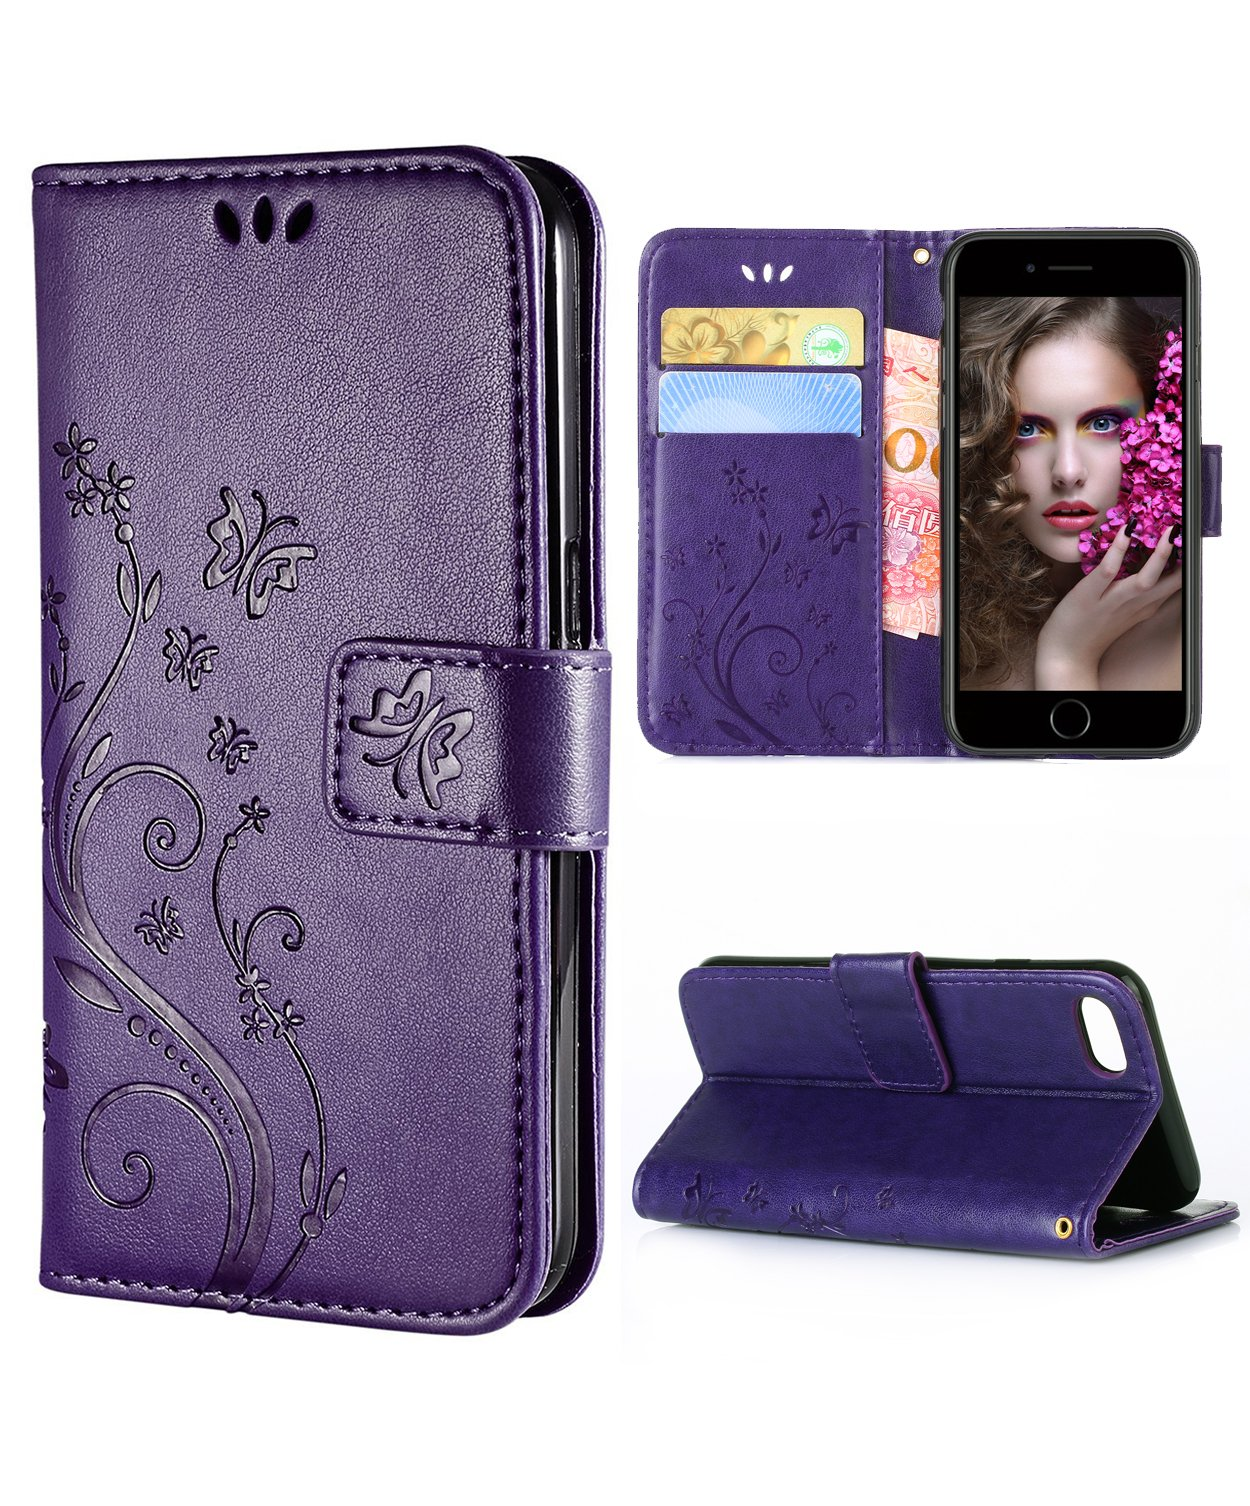 iPhone 8 Case,iPhone 7 Wallet Case, FLYEE Flip Case Wallet Leather [kickstand] Emboss Butterfly Flower Folio Magnetic Protective Cover with Card Slots for Apple iPhone8 iPone7 Purple